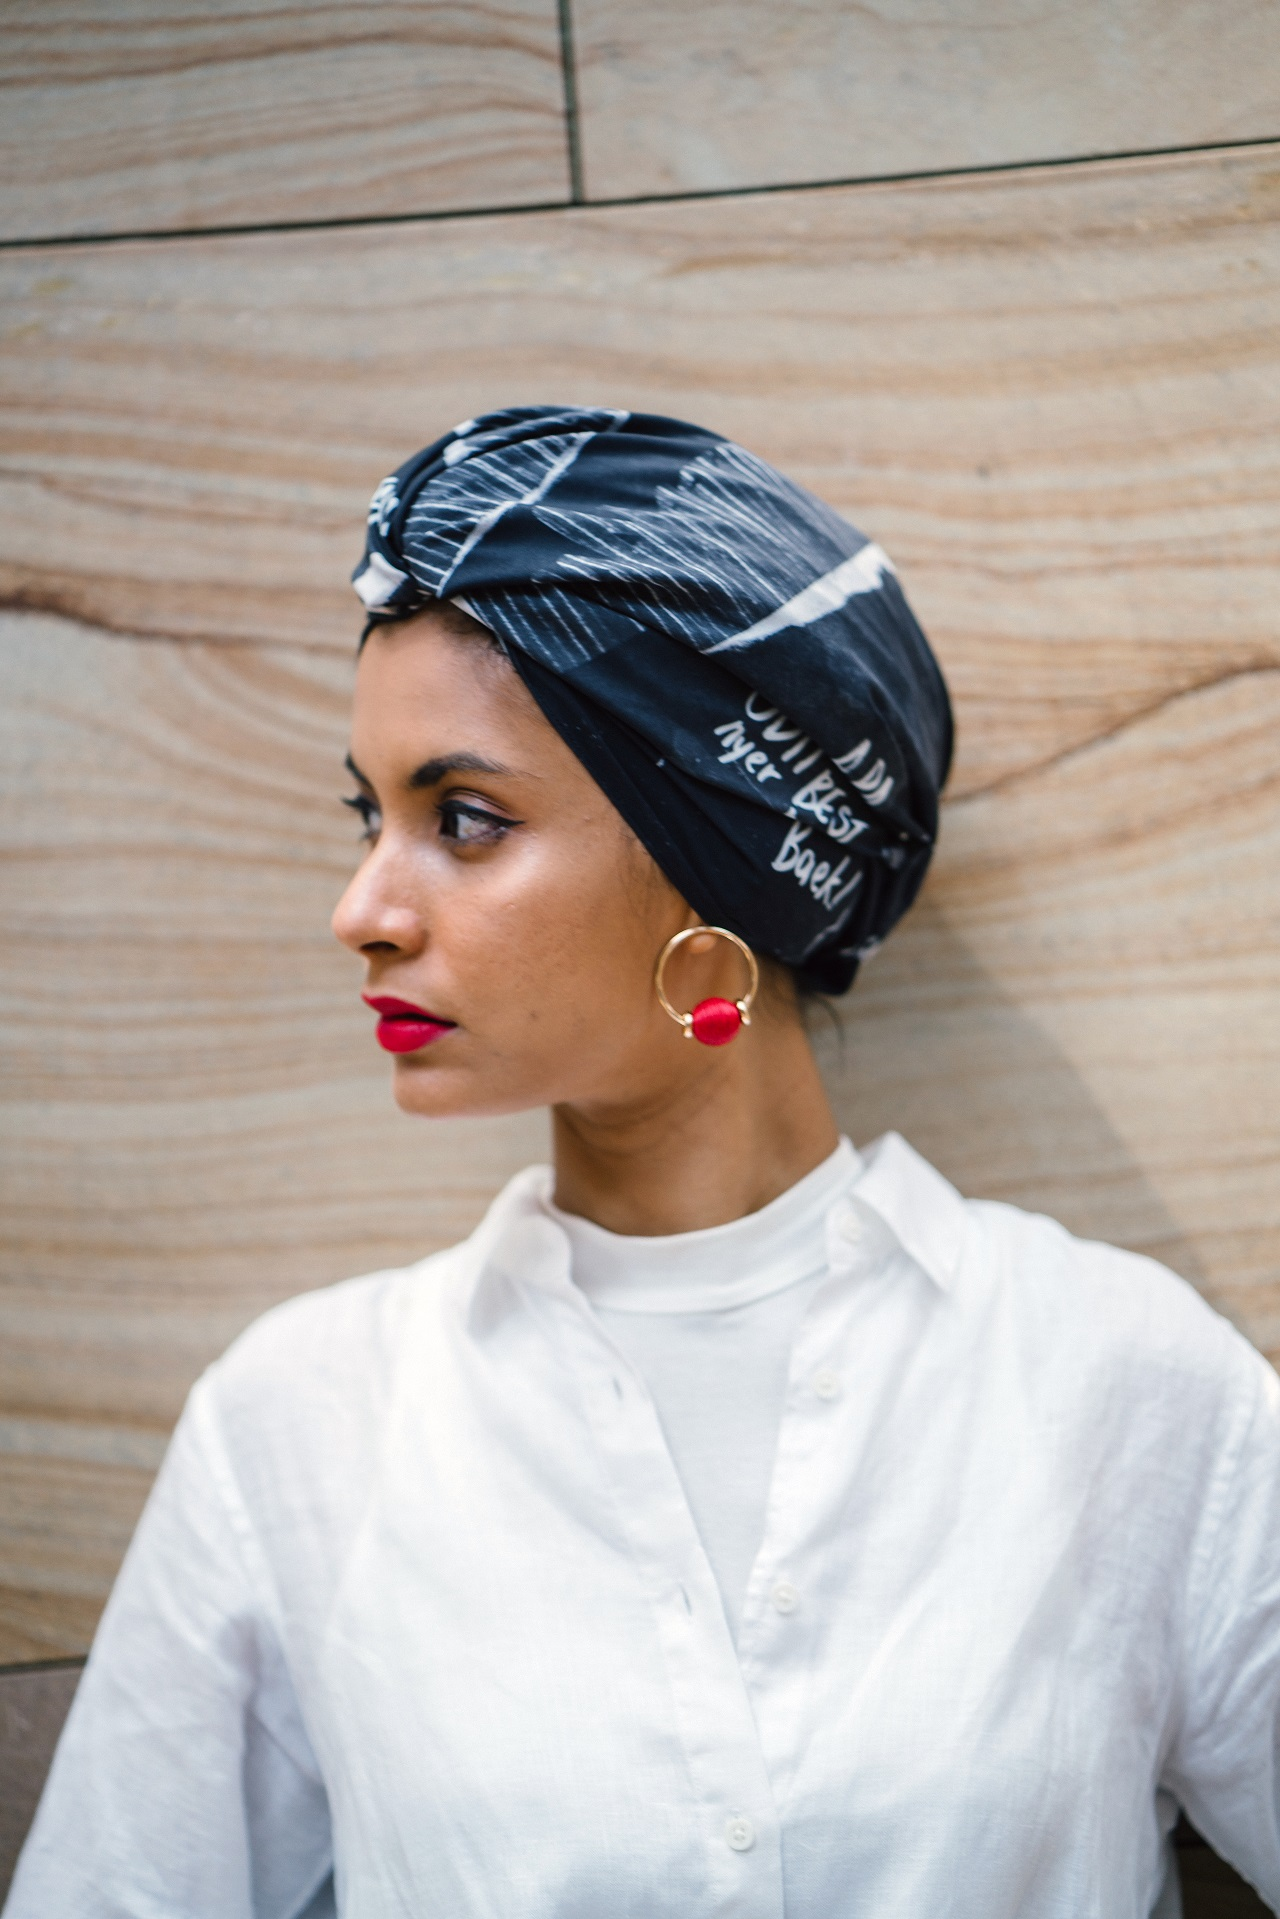 Stylish hair cover-up